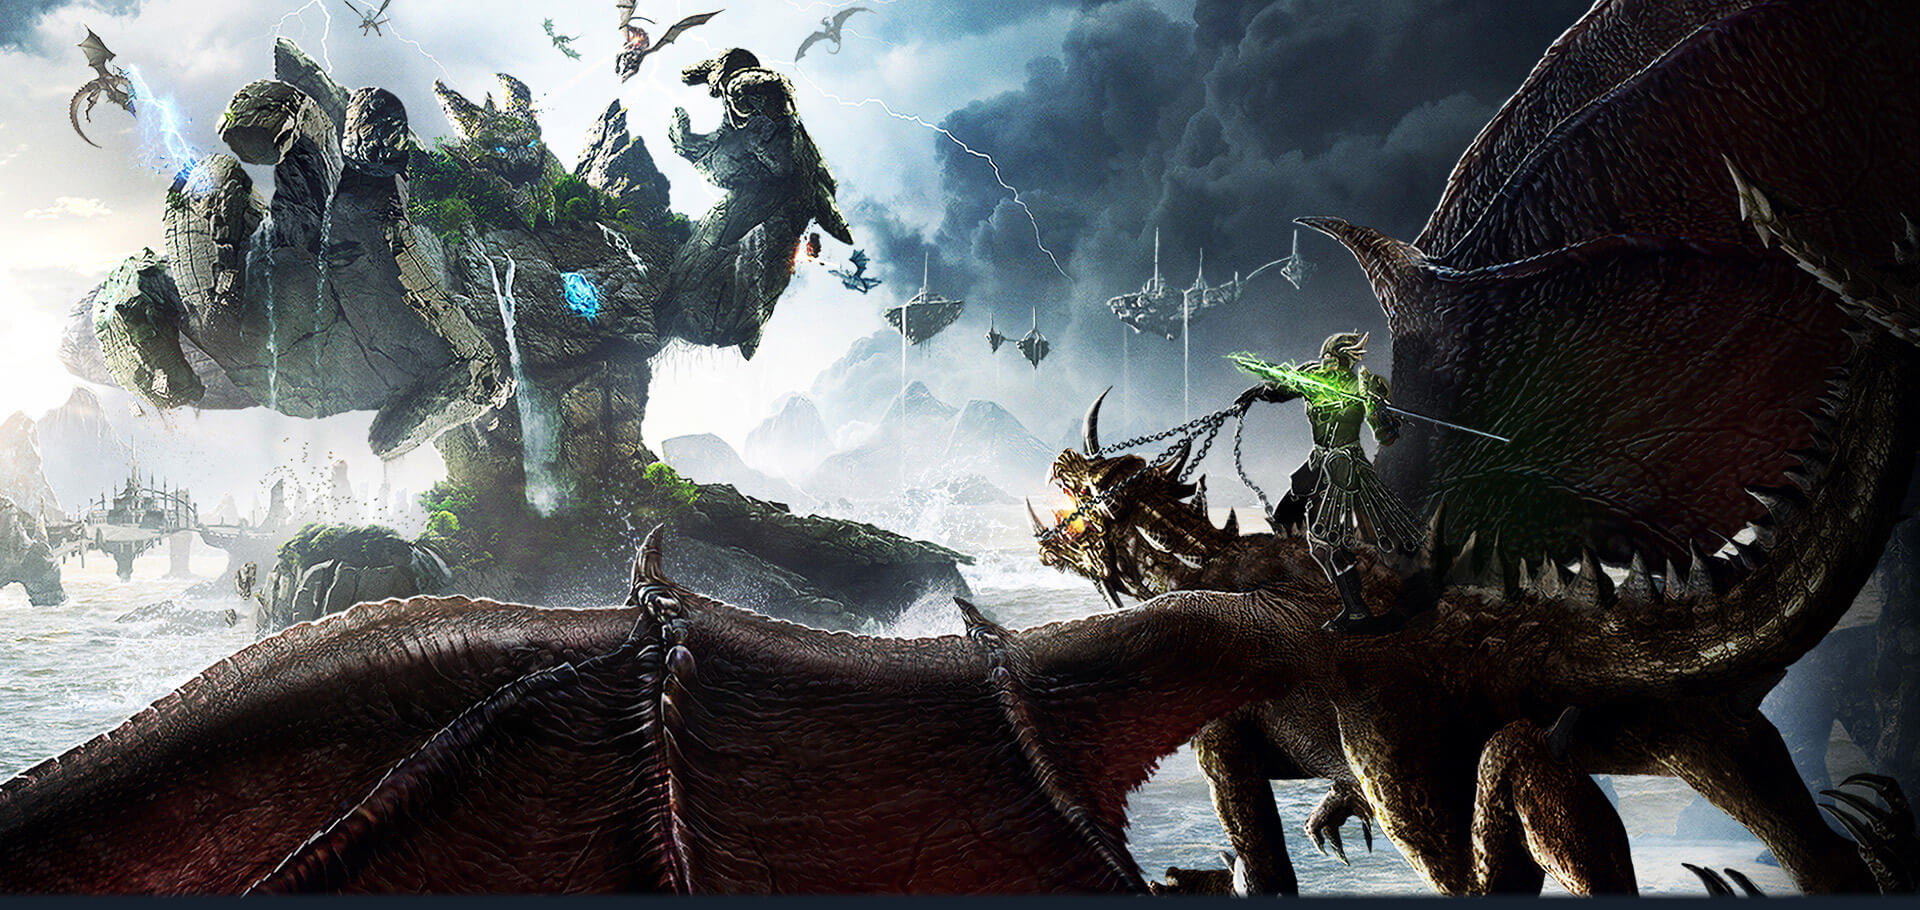 Monster Girl Quest Wallpaper Riders Of Icarus Ride Dragons And Rule The Skies As A